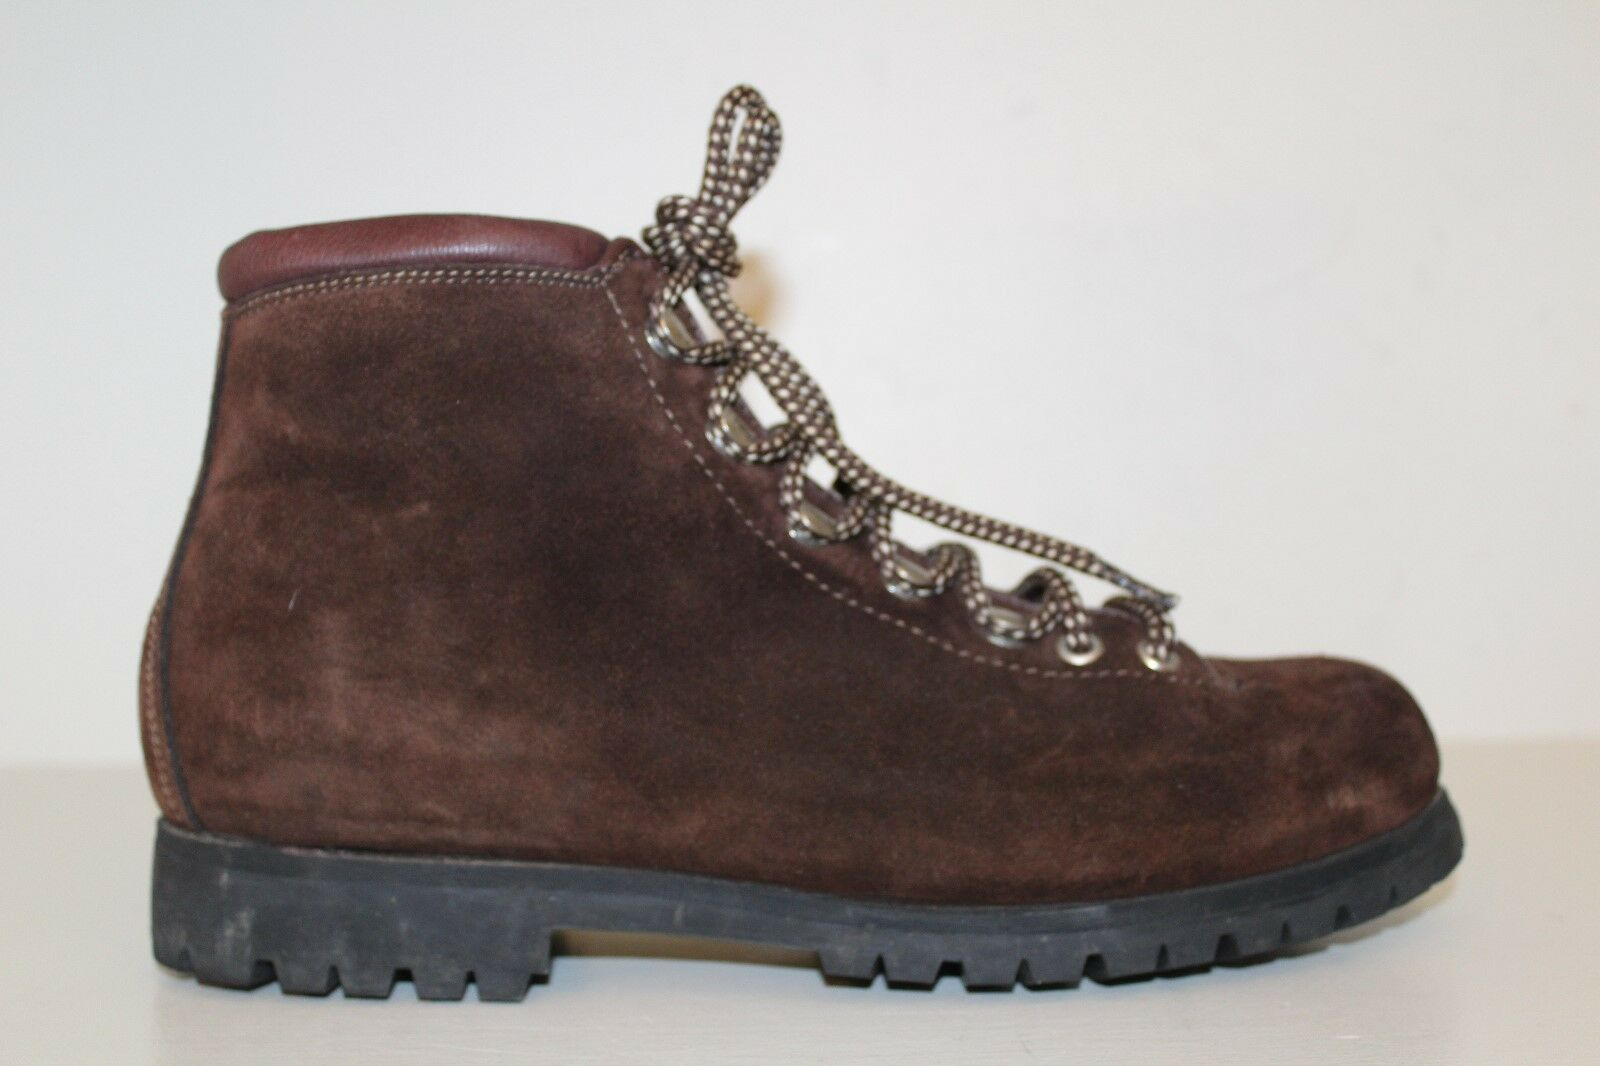 THE ALPS Fabiano Womens Boots Sz 9M Brown Suede Hiking Mountaineering